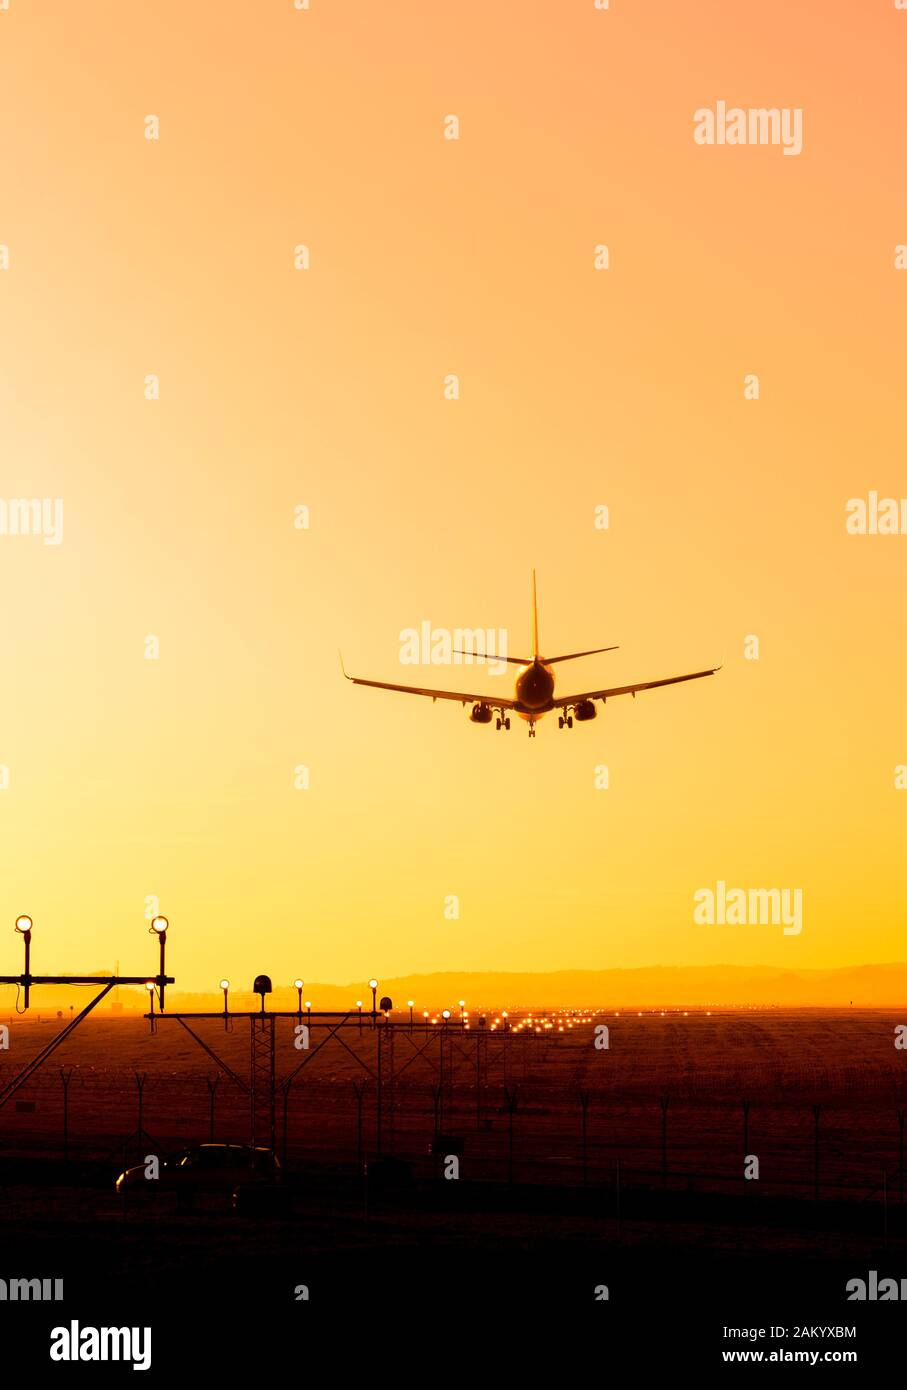 Back View Silhouette Of Airplane Landing At The Airport At Sunny Orange And Purple Sunset Runway End Identification Lights And Strobe Glowing Stock Photo Alamy